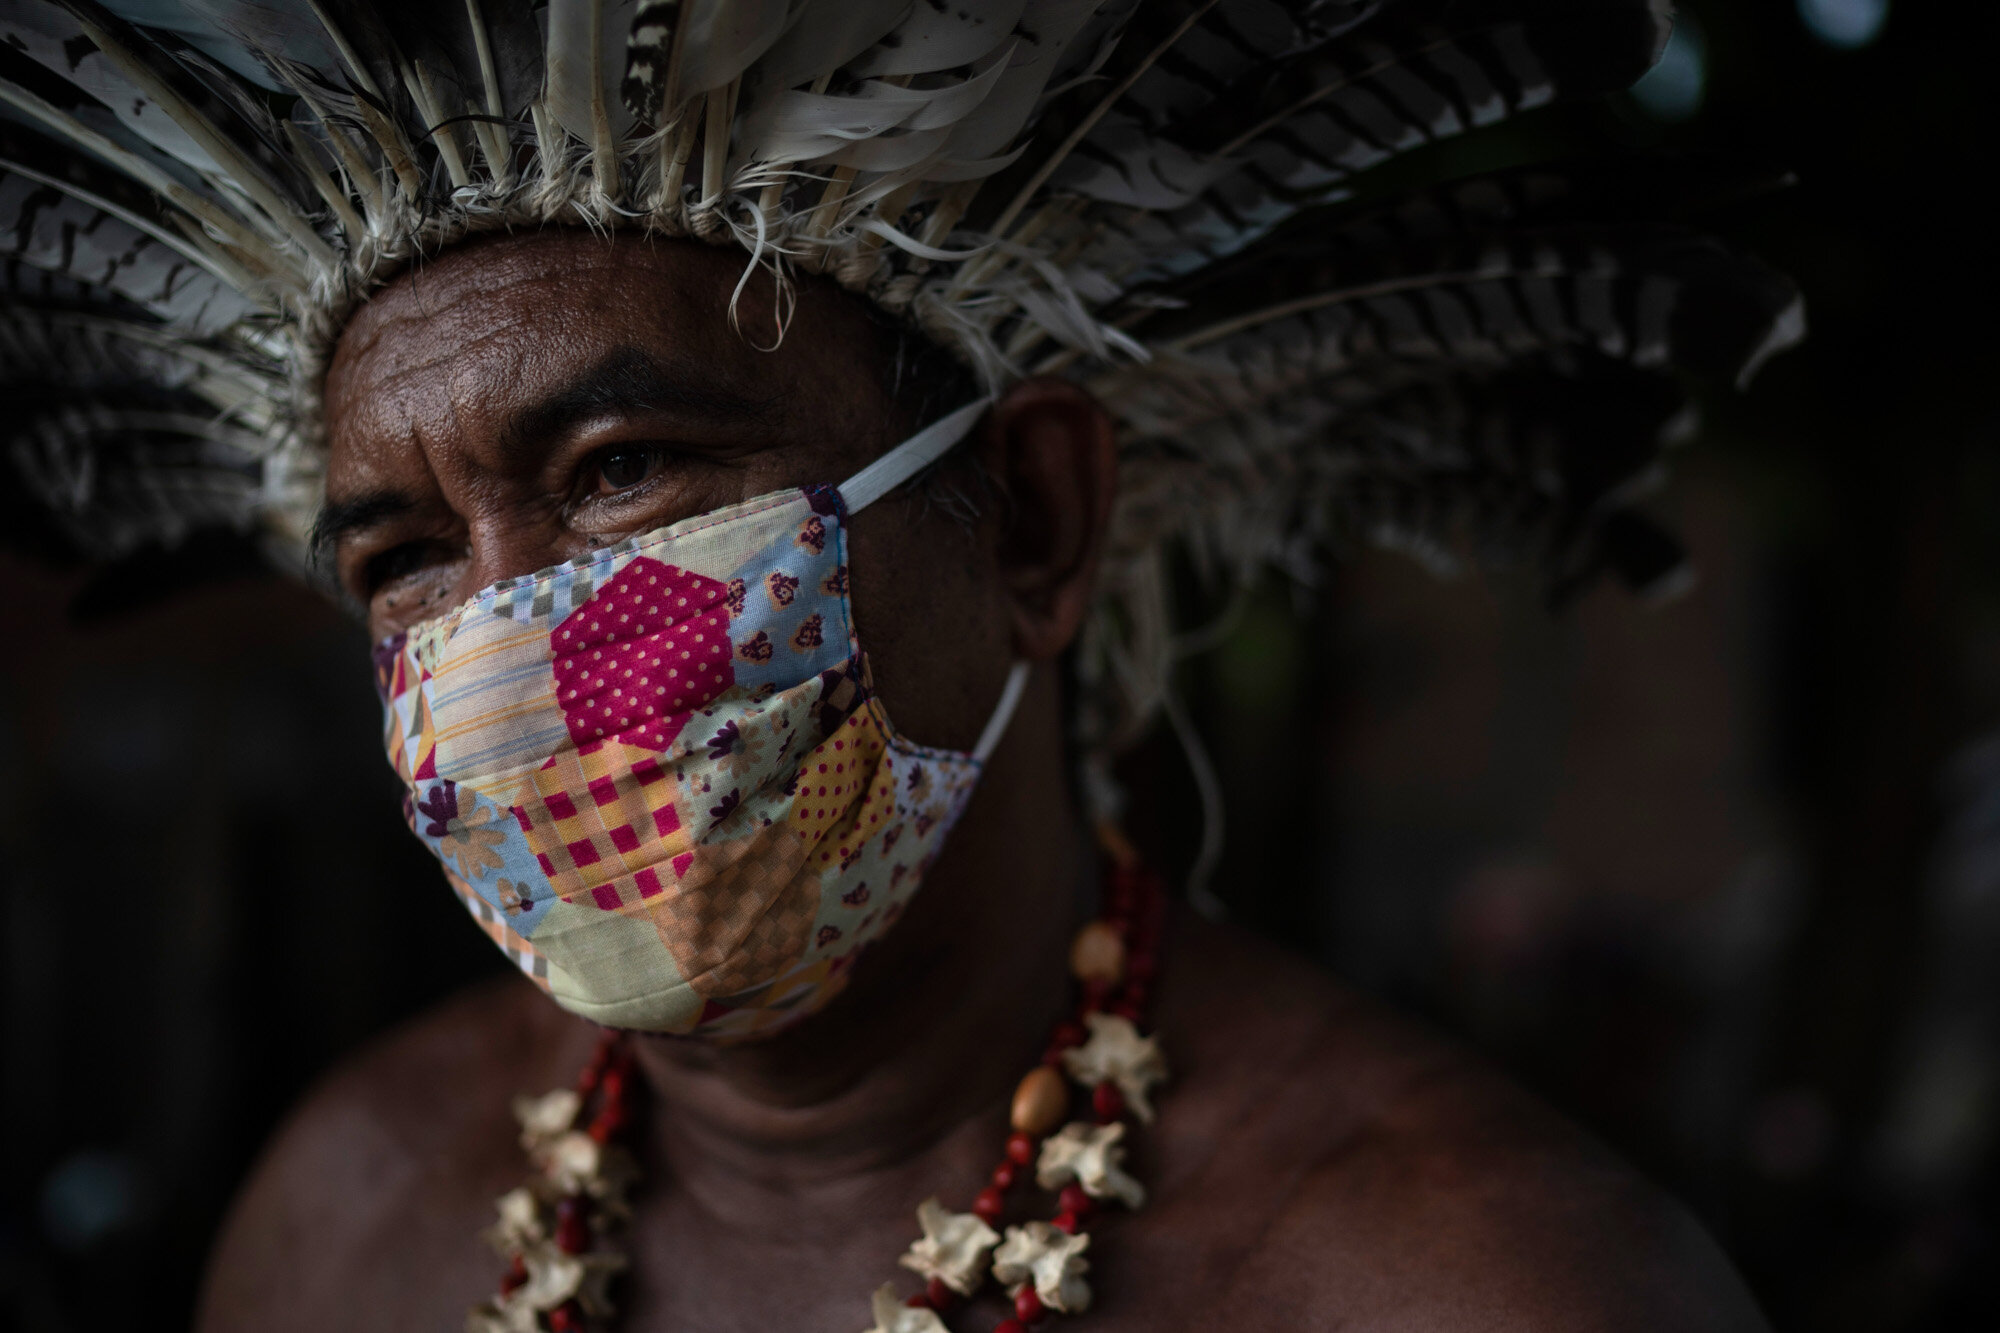 """Cacique Pedro poses for a photo as he sits outside his house in the """"Park of Indigenous Nations"""" community in Manaus, Brazil, on May 10, 2020. (AP Photo/Felipe Dana)"""